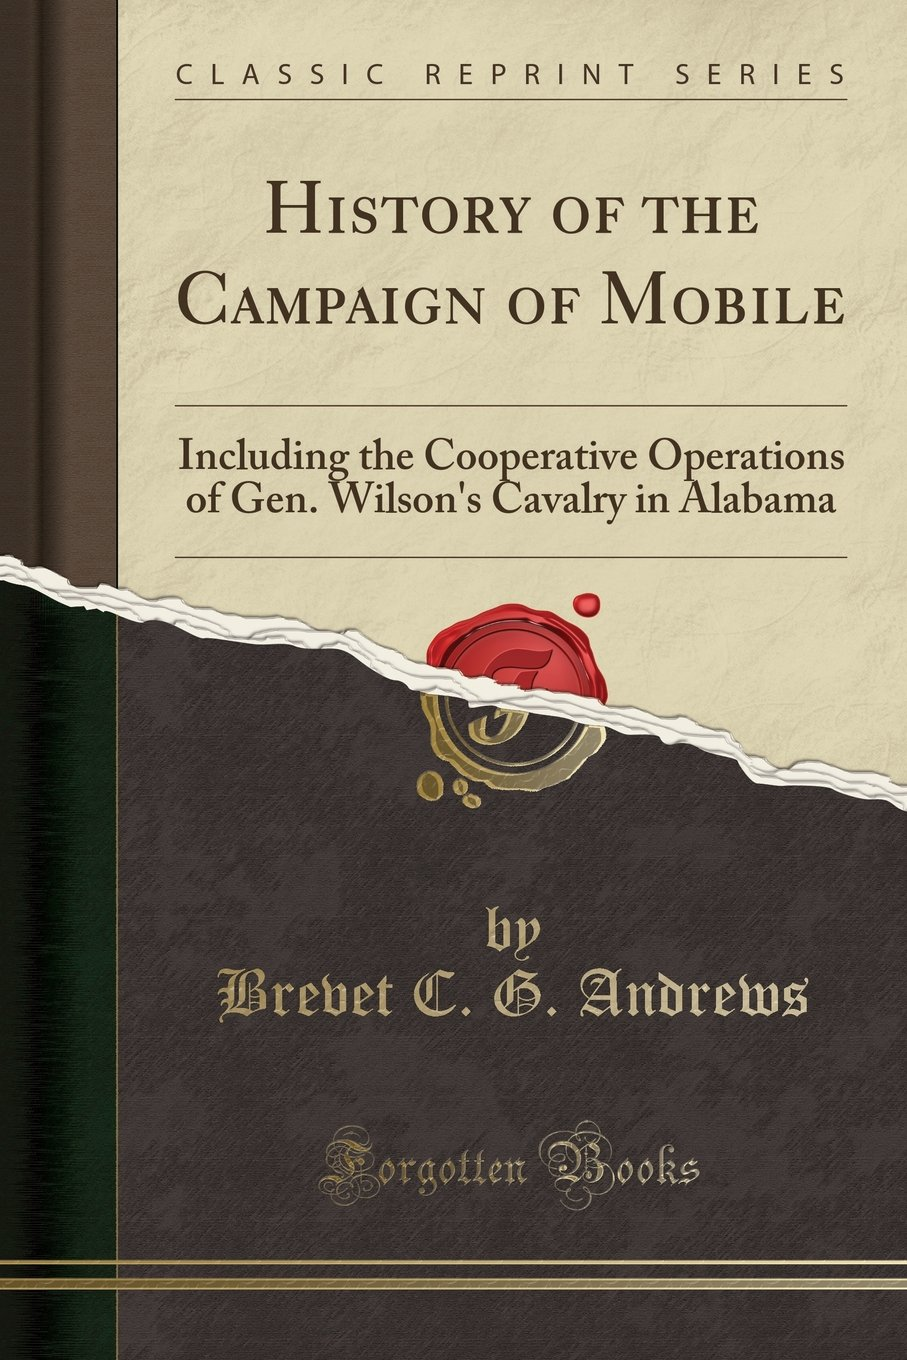 History of the Campaign of Mobile: Including the Cooperative Operations of Gen. Wilson's Cavalry in Alabama (Classic Reprint) pdf epub